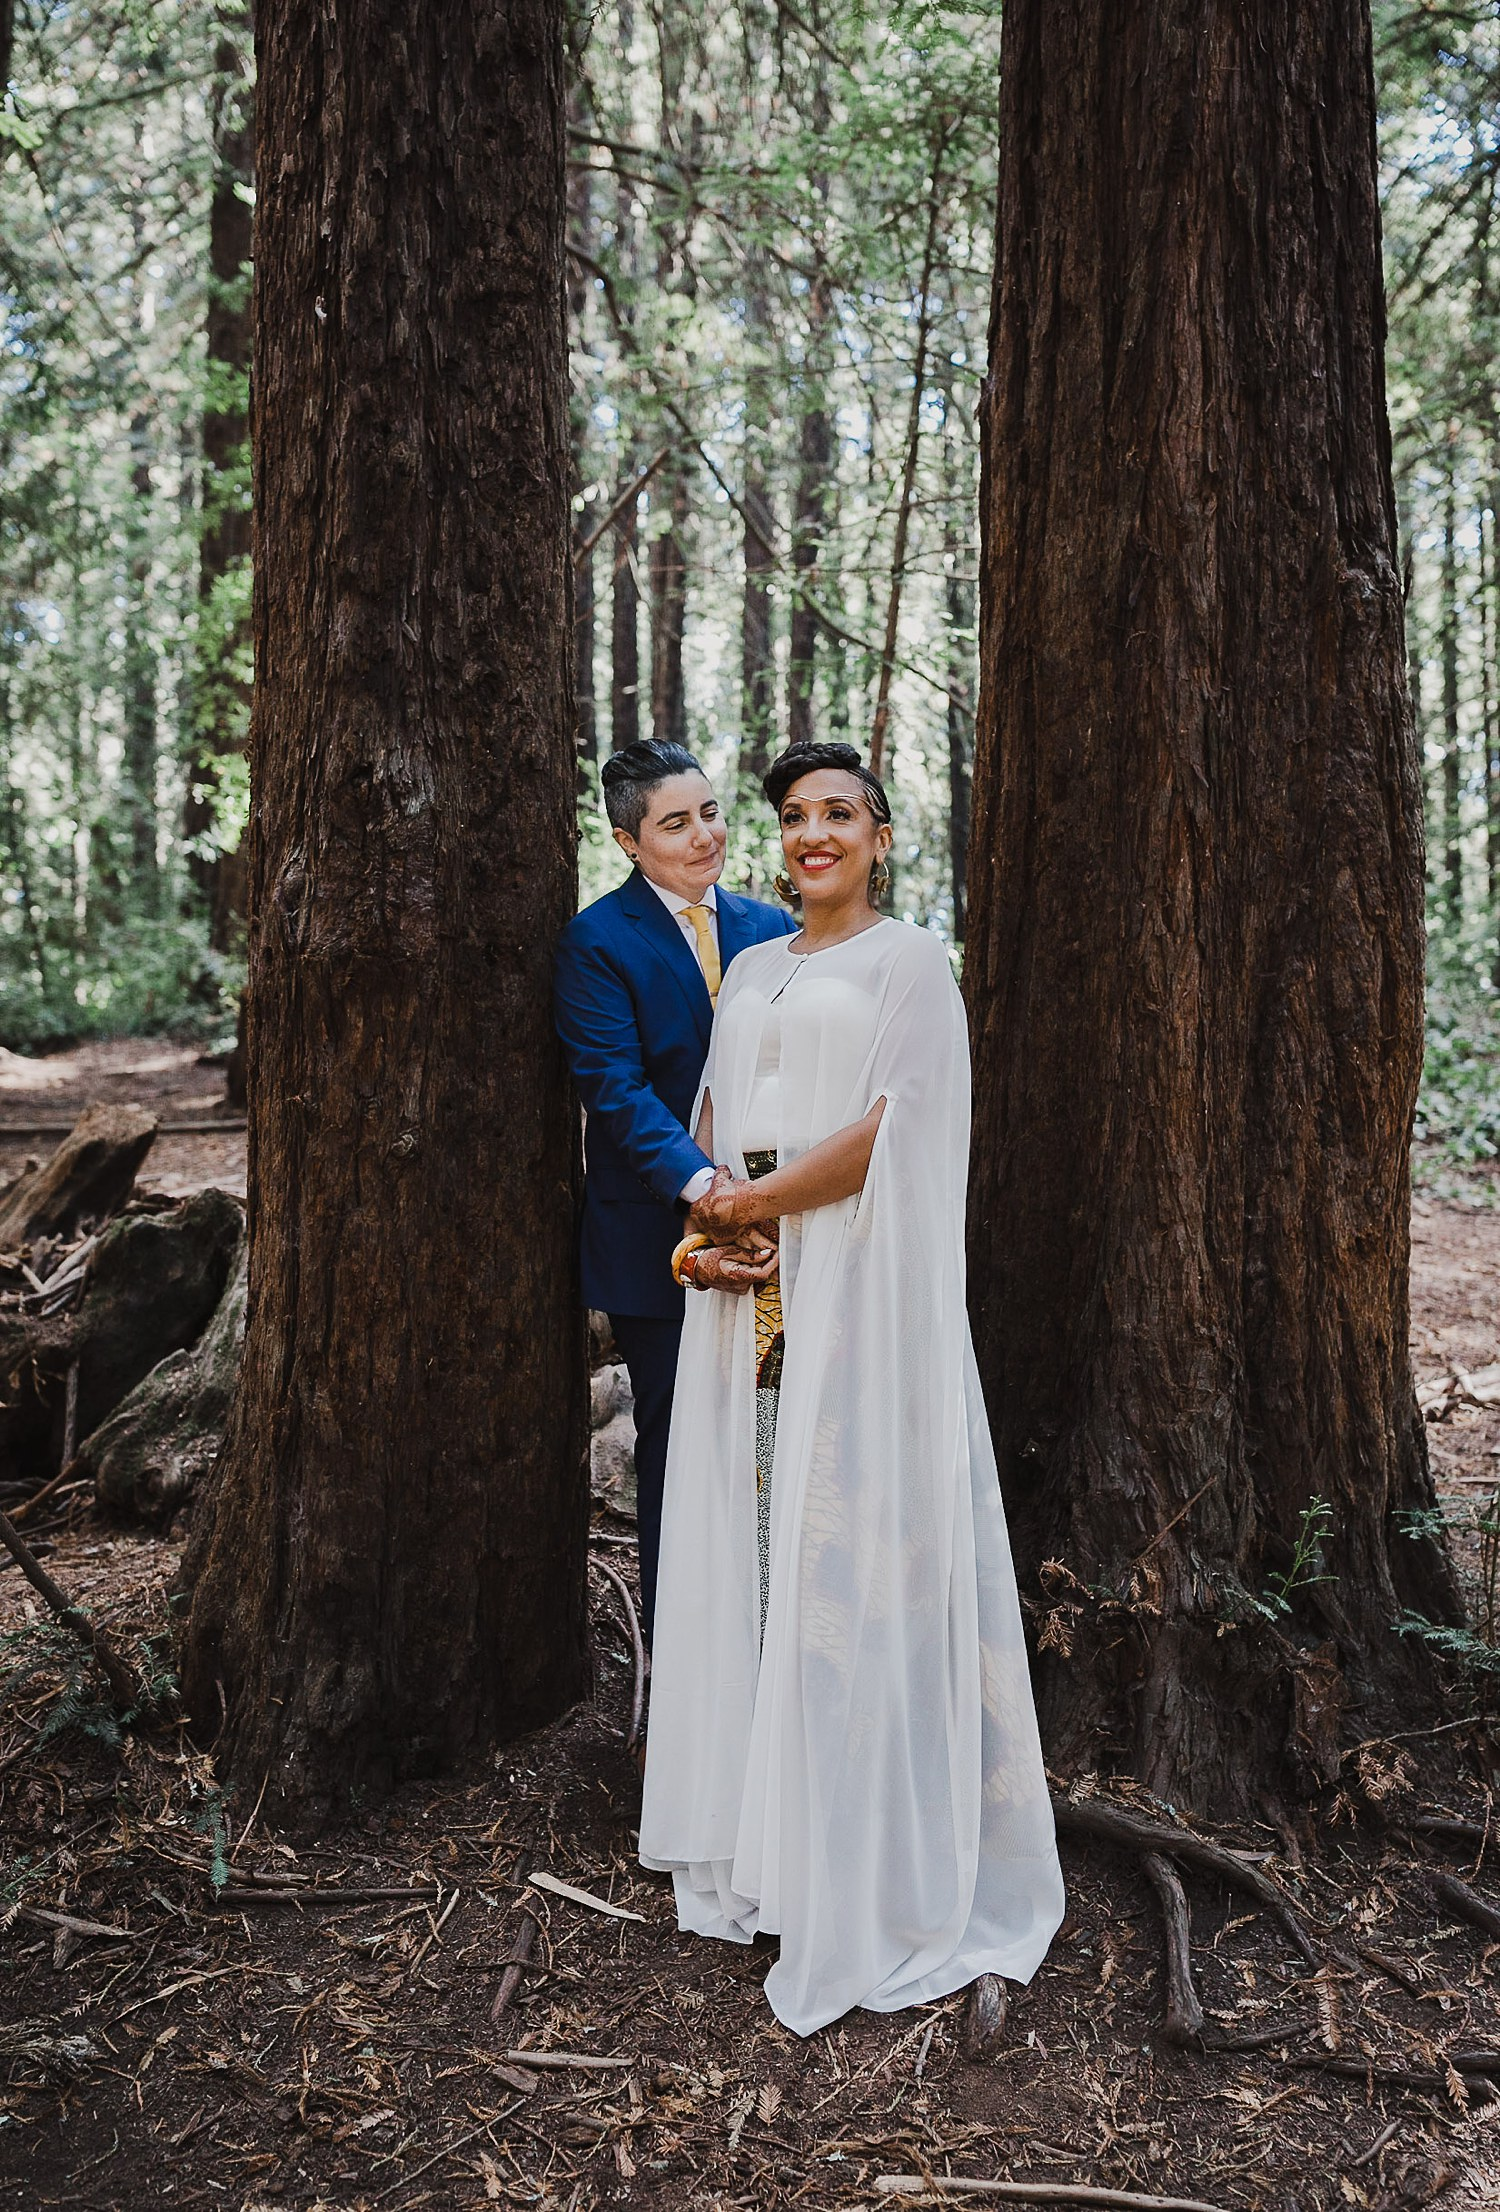 Oakland wedding photography story in Joaquin Miller Park.